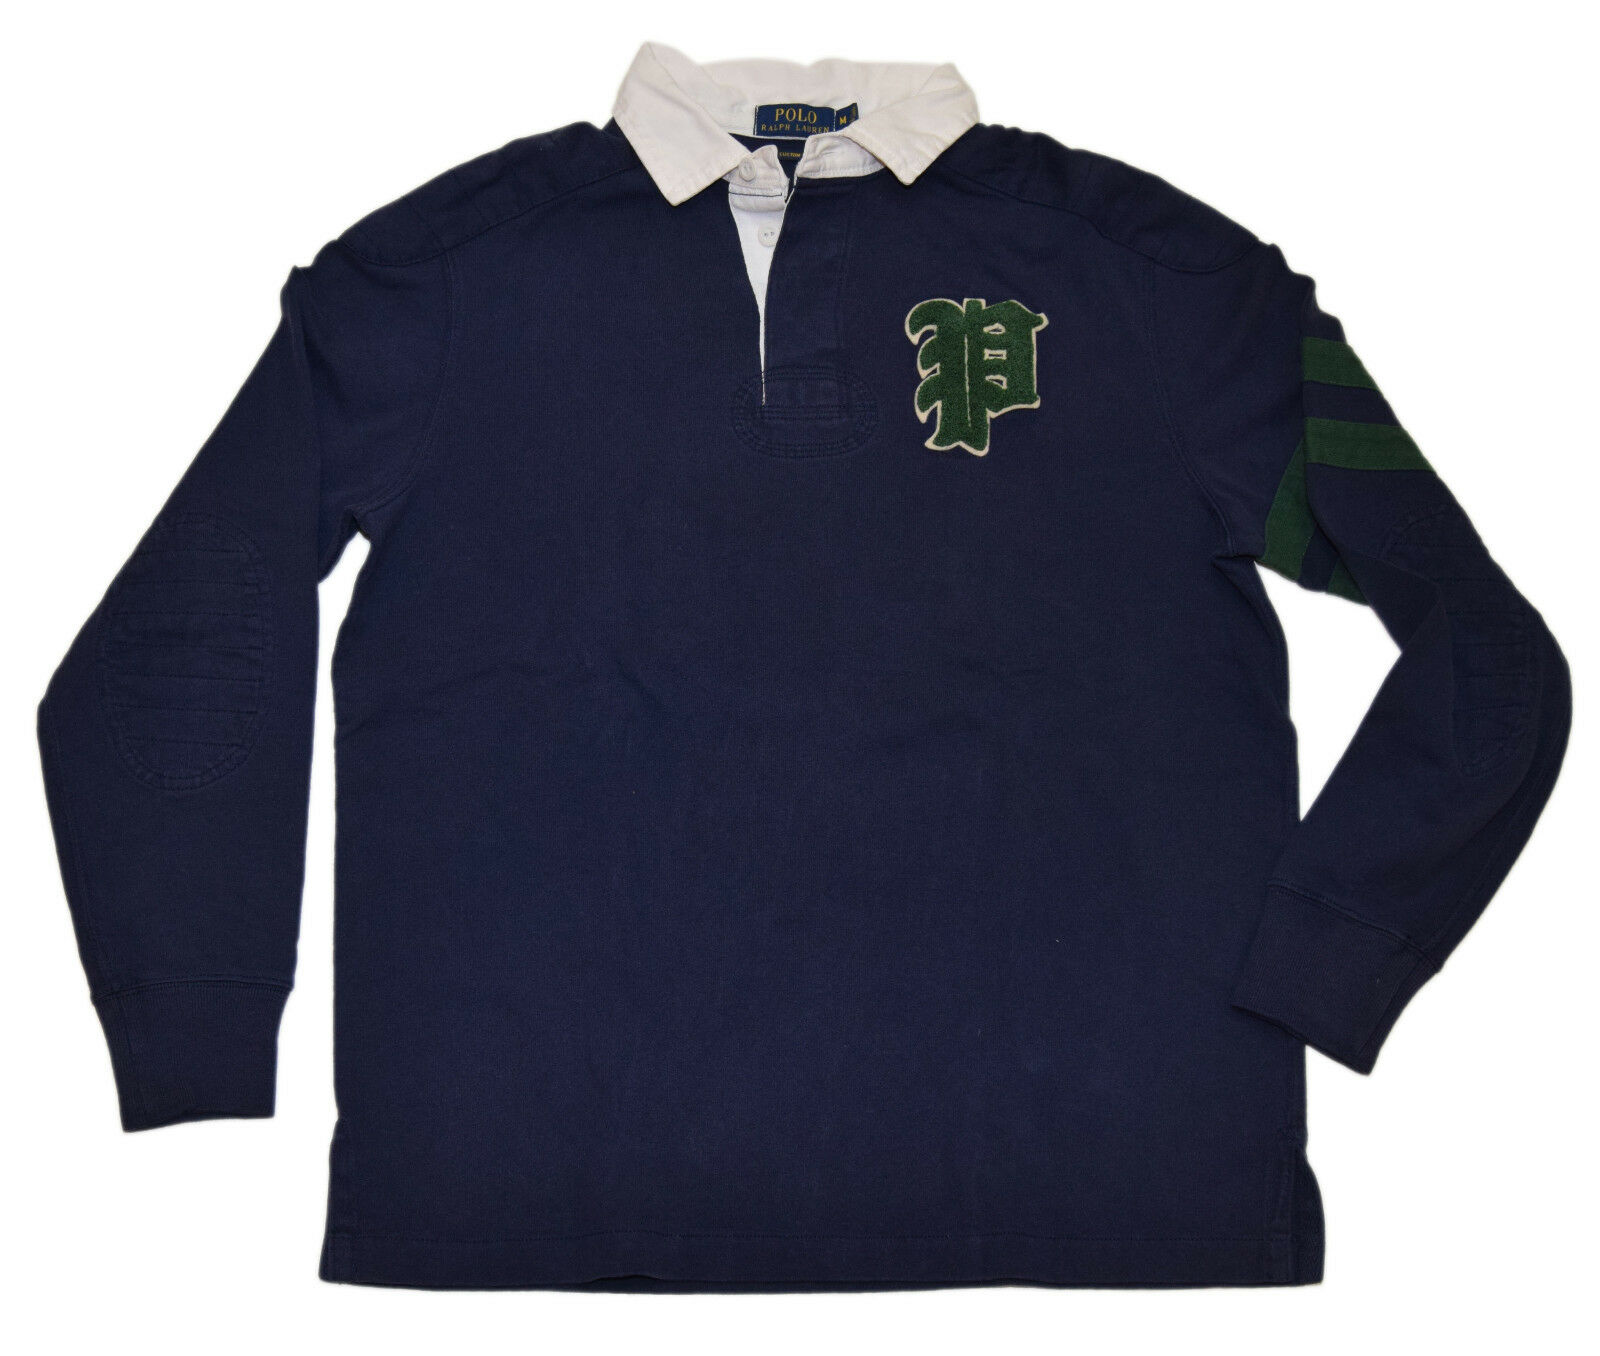 Polo Ralph Lauren Mens Quilted Rugby Letterman Sweatshirt Shirt Navy Green Small